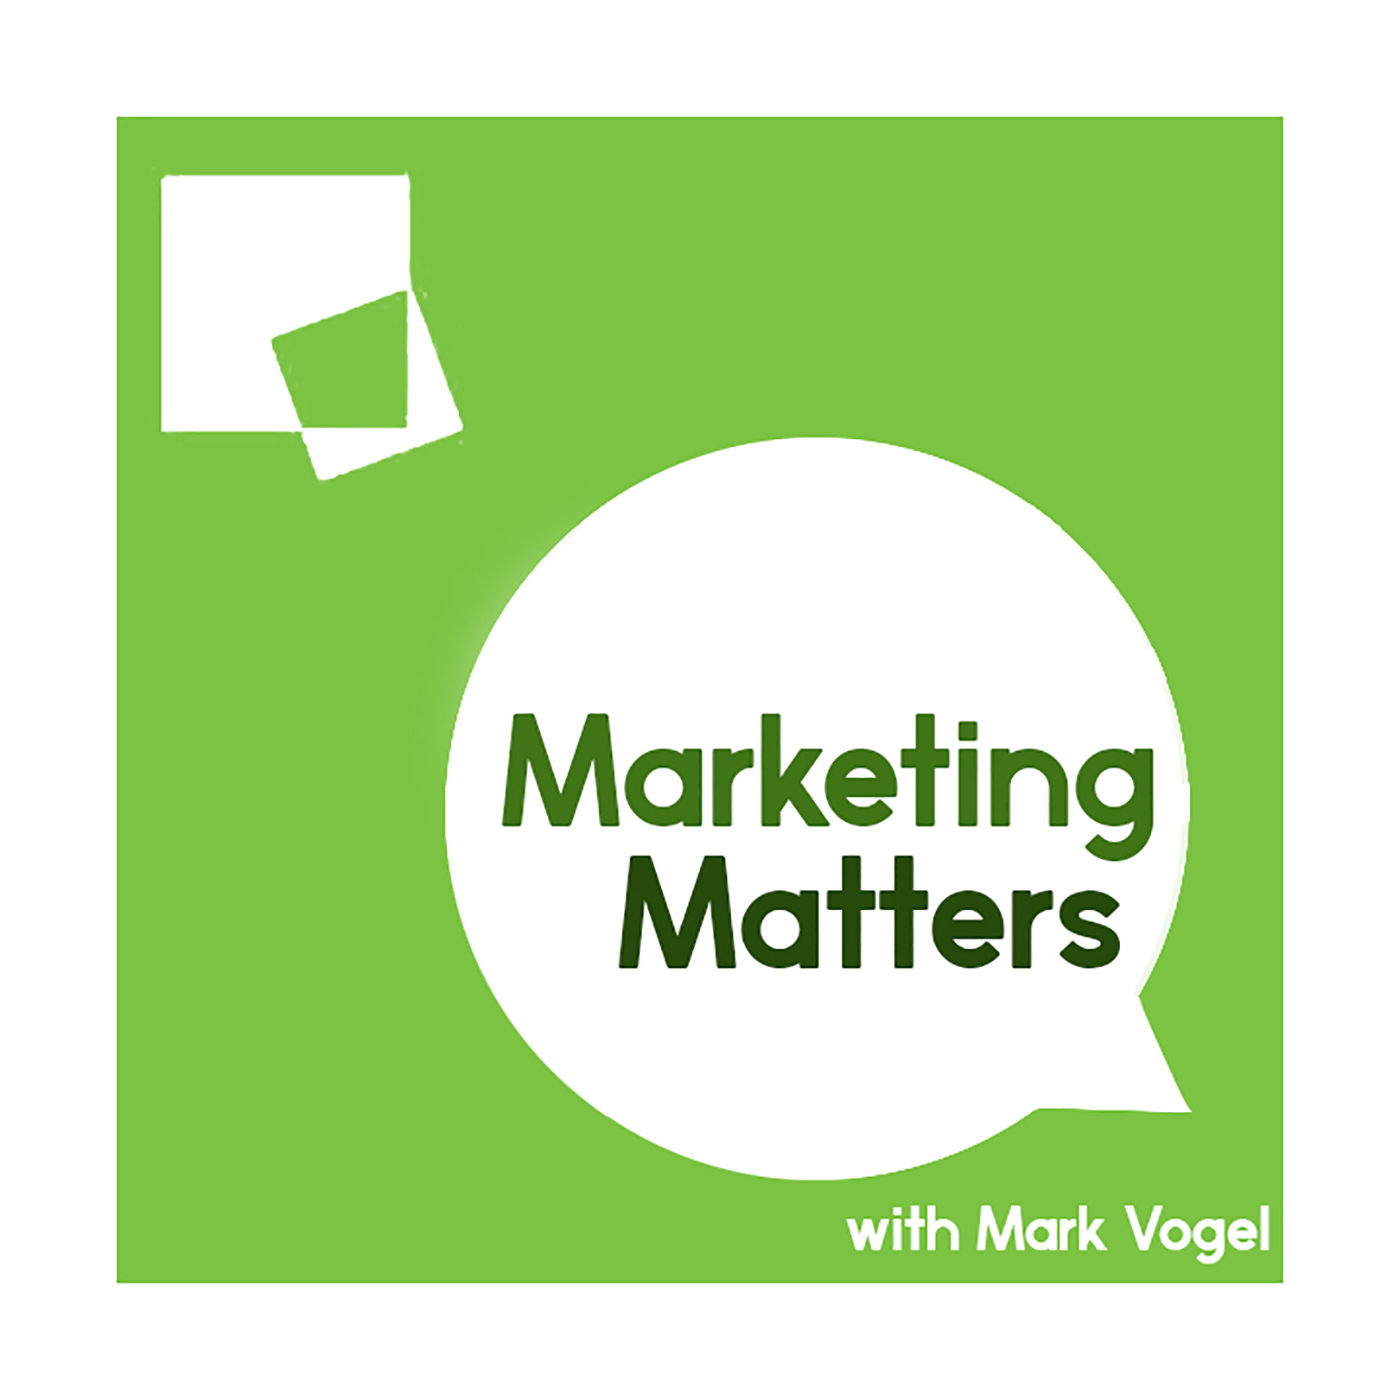 The Marketing Matters Podcast with Mark Vogel